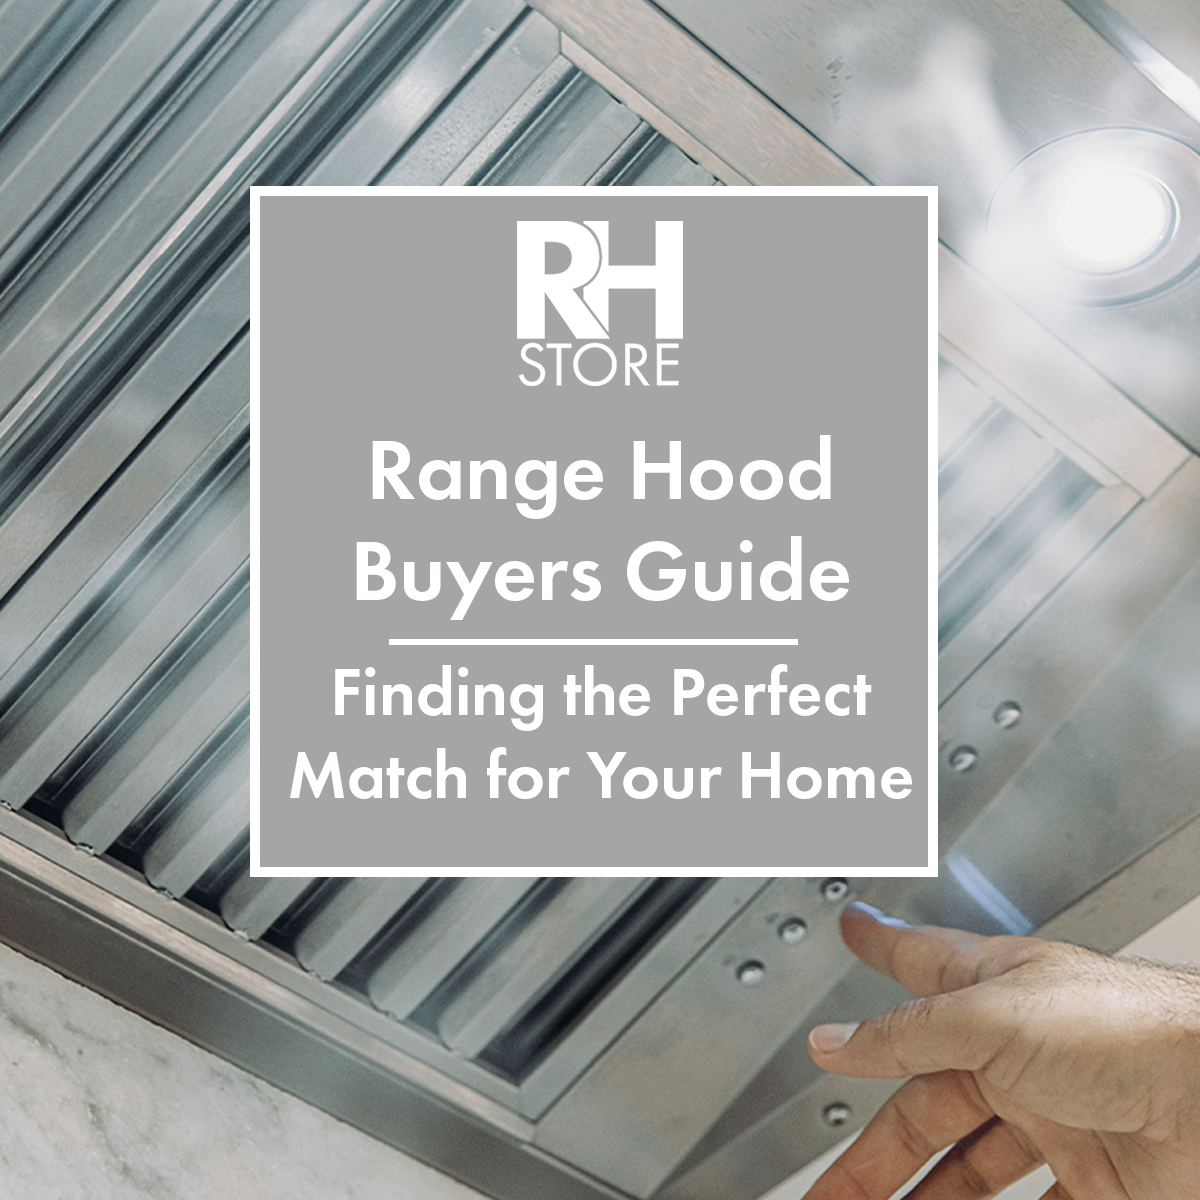 Range Hood Buyers Guide | Finding the Perfect Match for Your Home